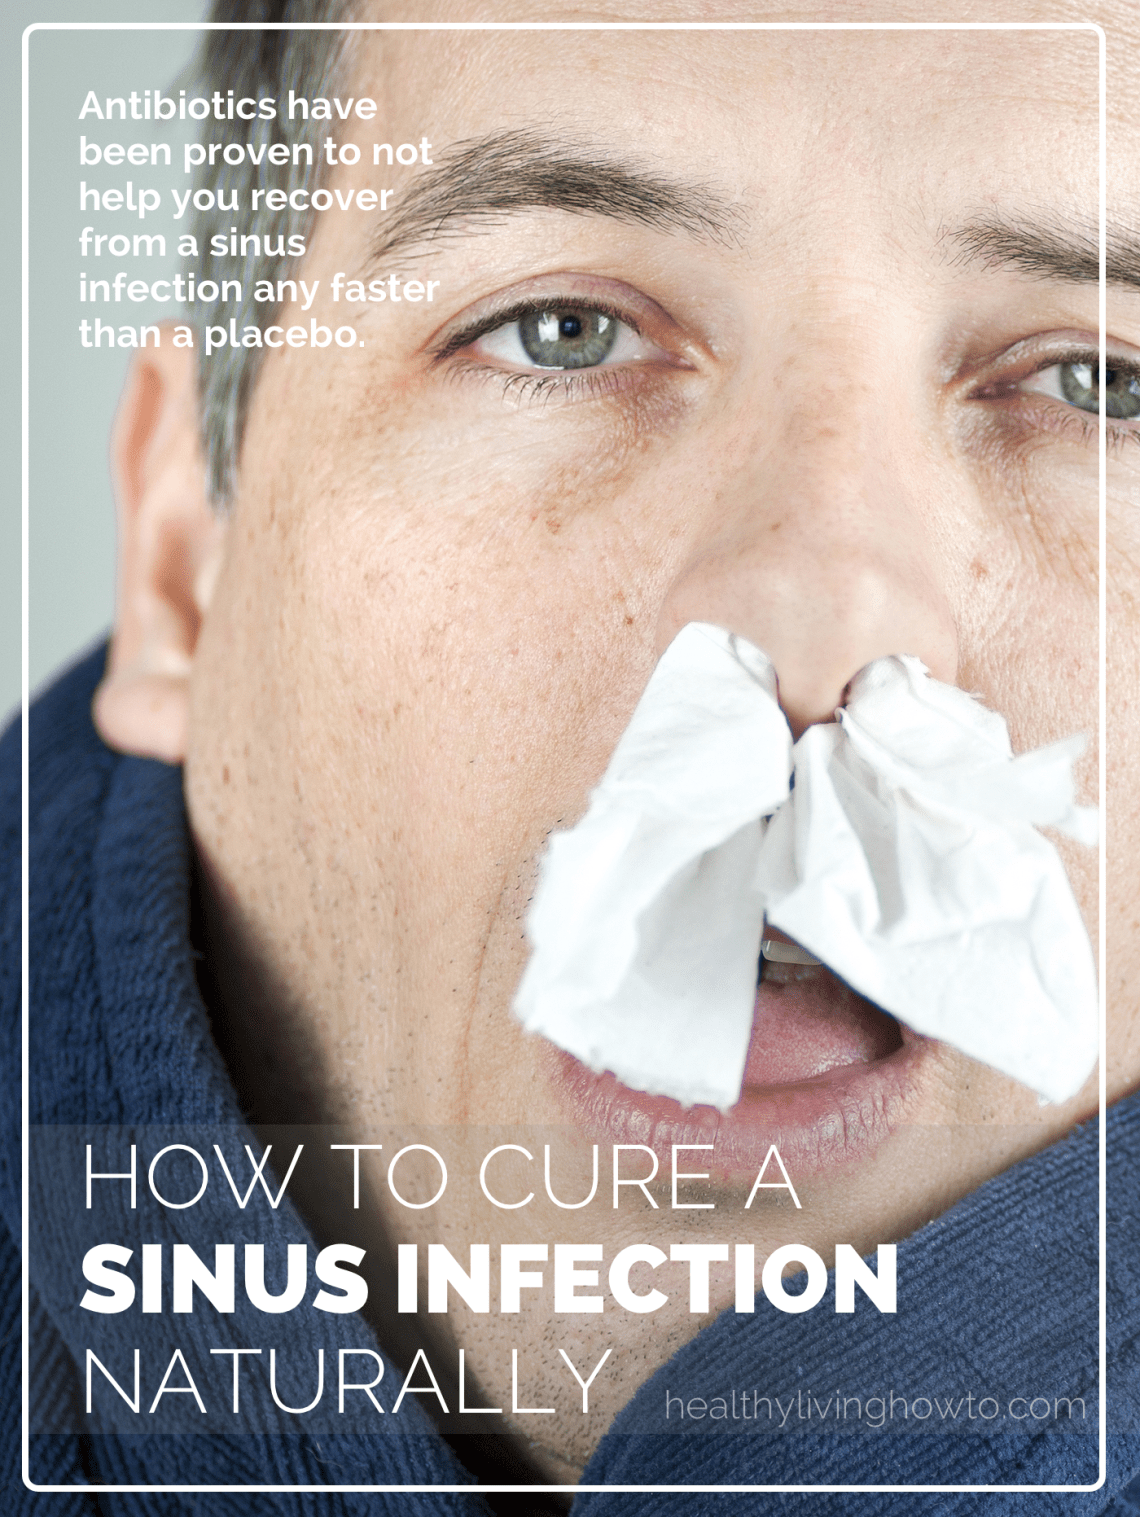 How To Cure A Sinus Infection Naturally healthylivinghowto.com